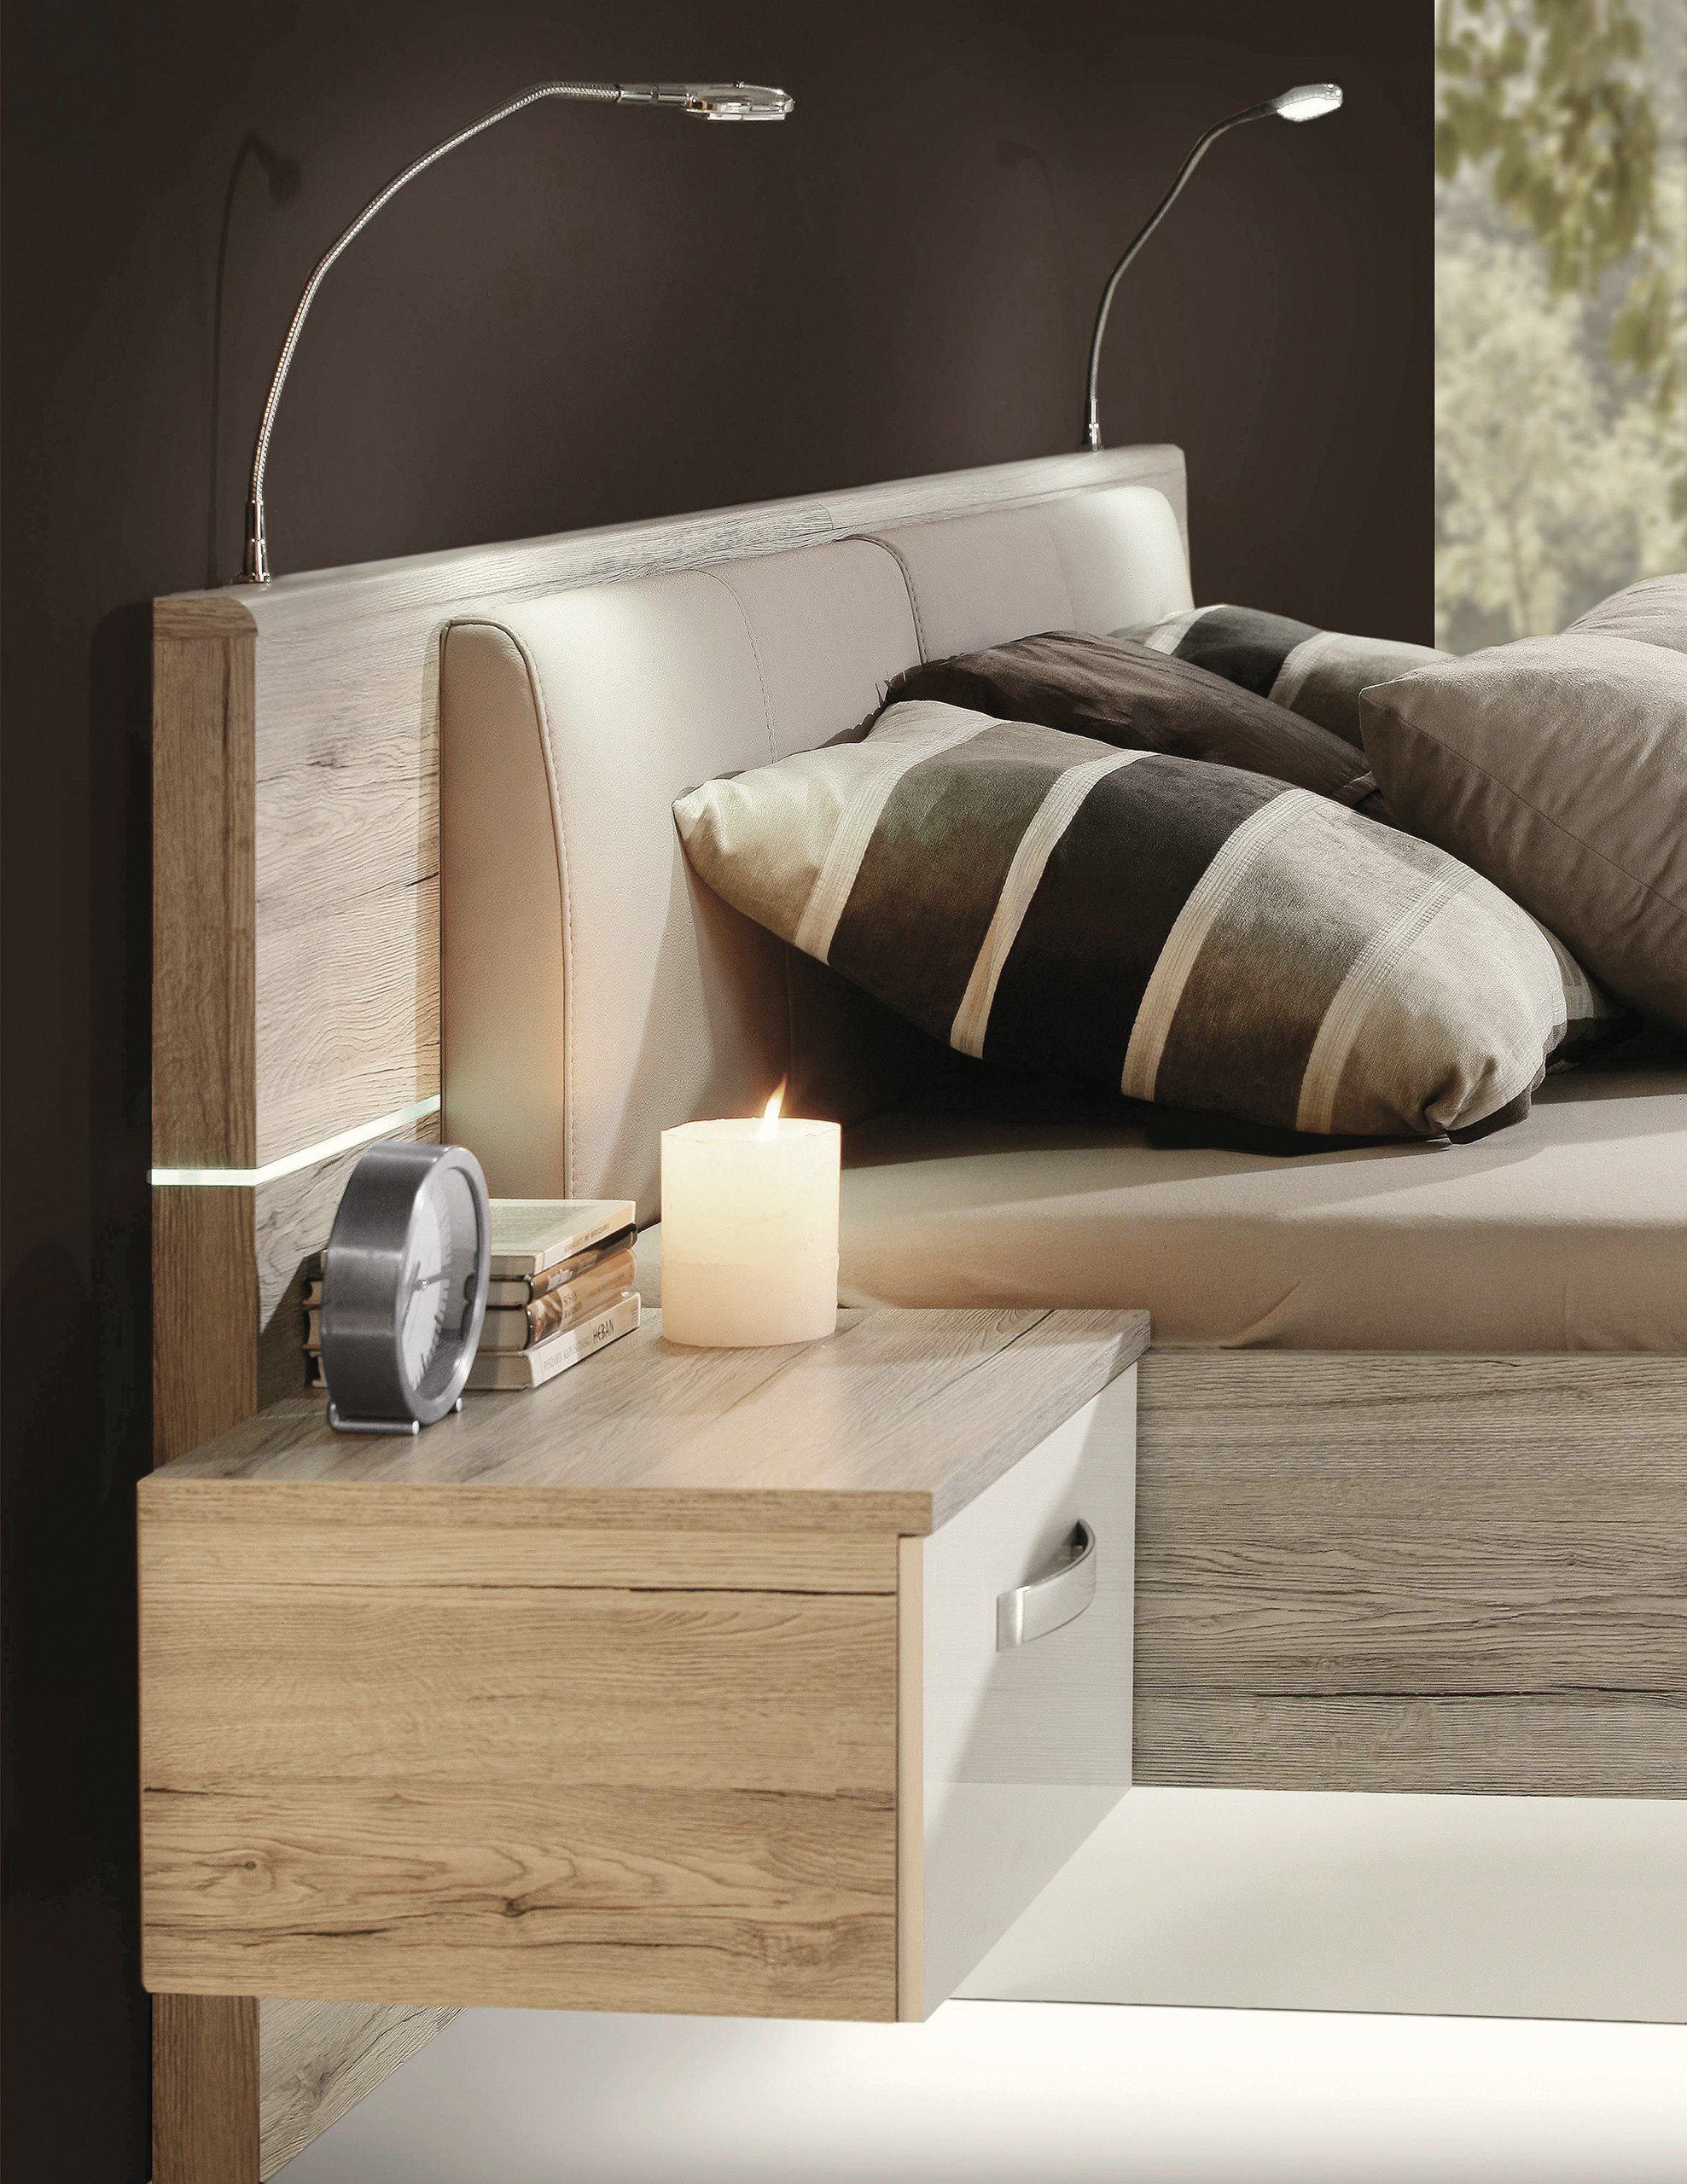 bett rondino von forte beton optik hochglanz wei. Black Bedroom Furniture Sets. Home Design Ideas